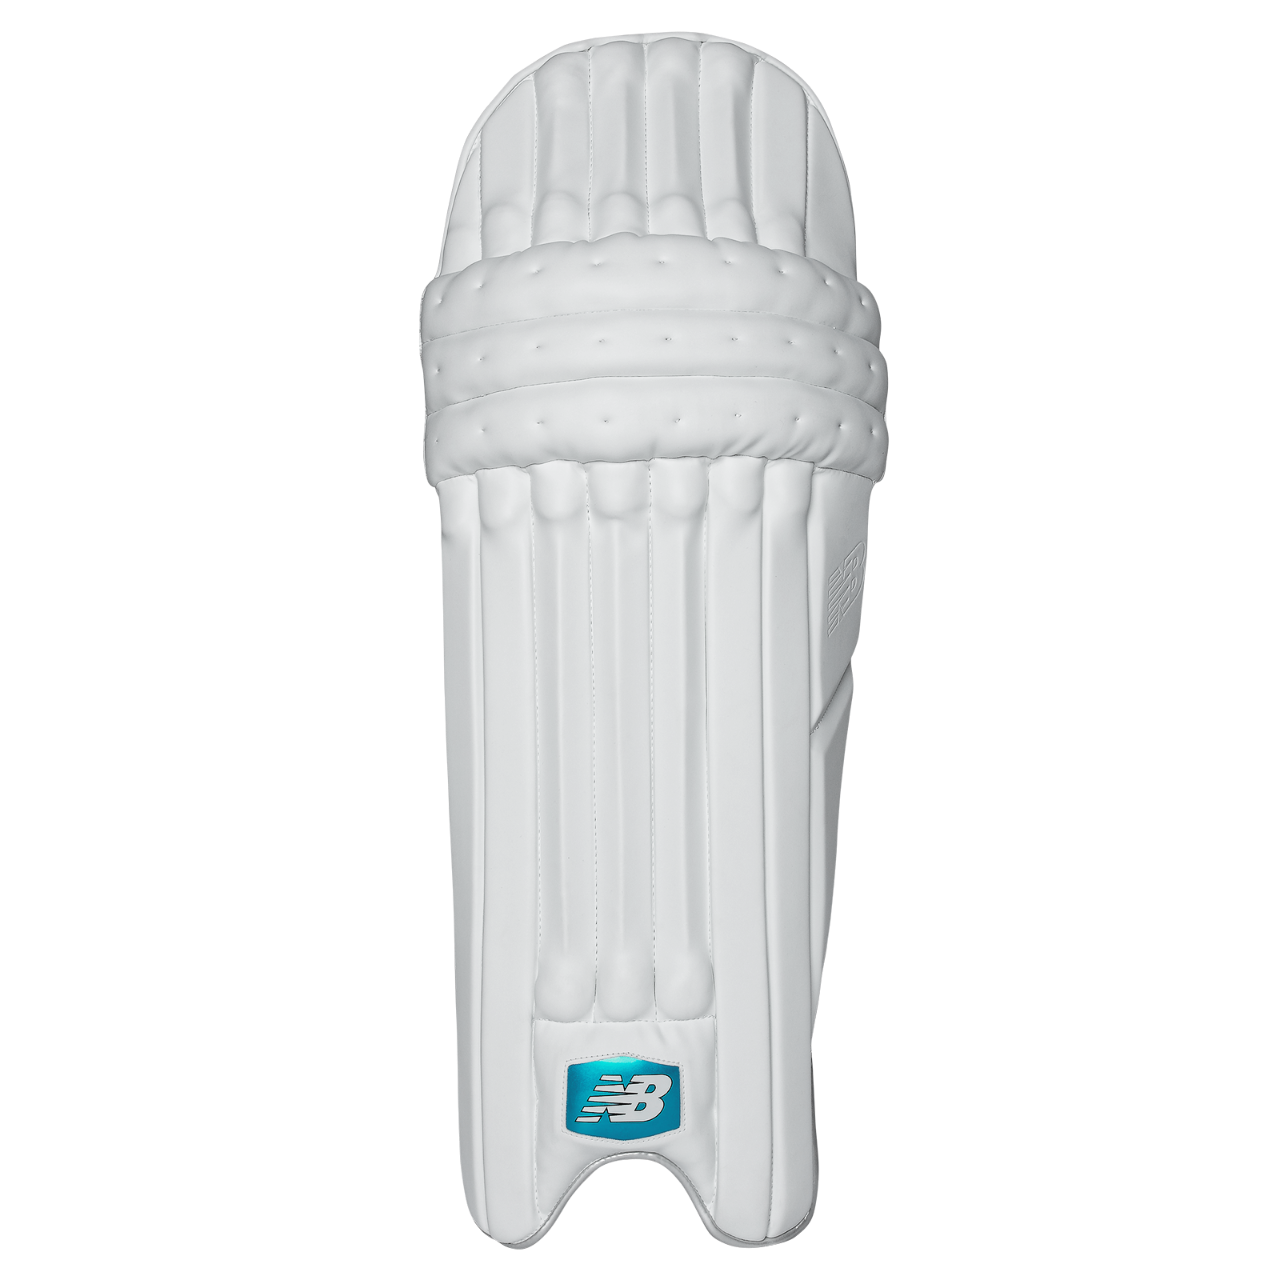 2020 New Balance DC 680 Batting Pads